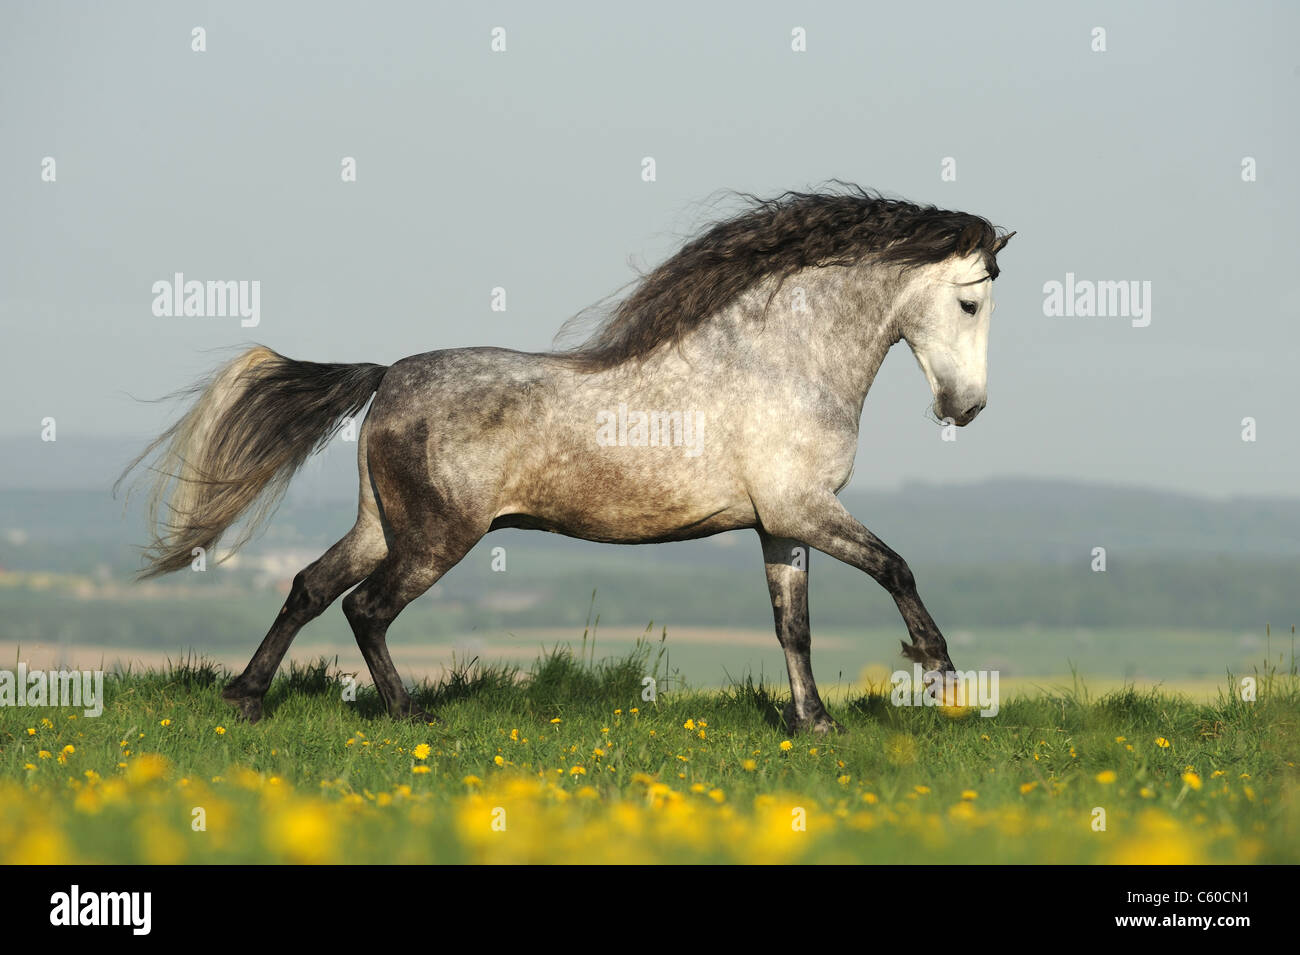 Andalusian Horse (Equus ferus caballus). Dapple-gray stallion in a gallop on a meadow. - Stock Image